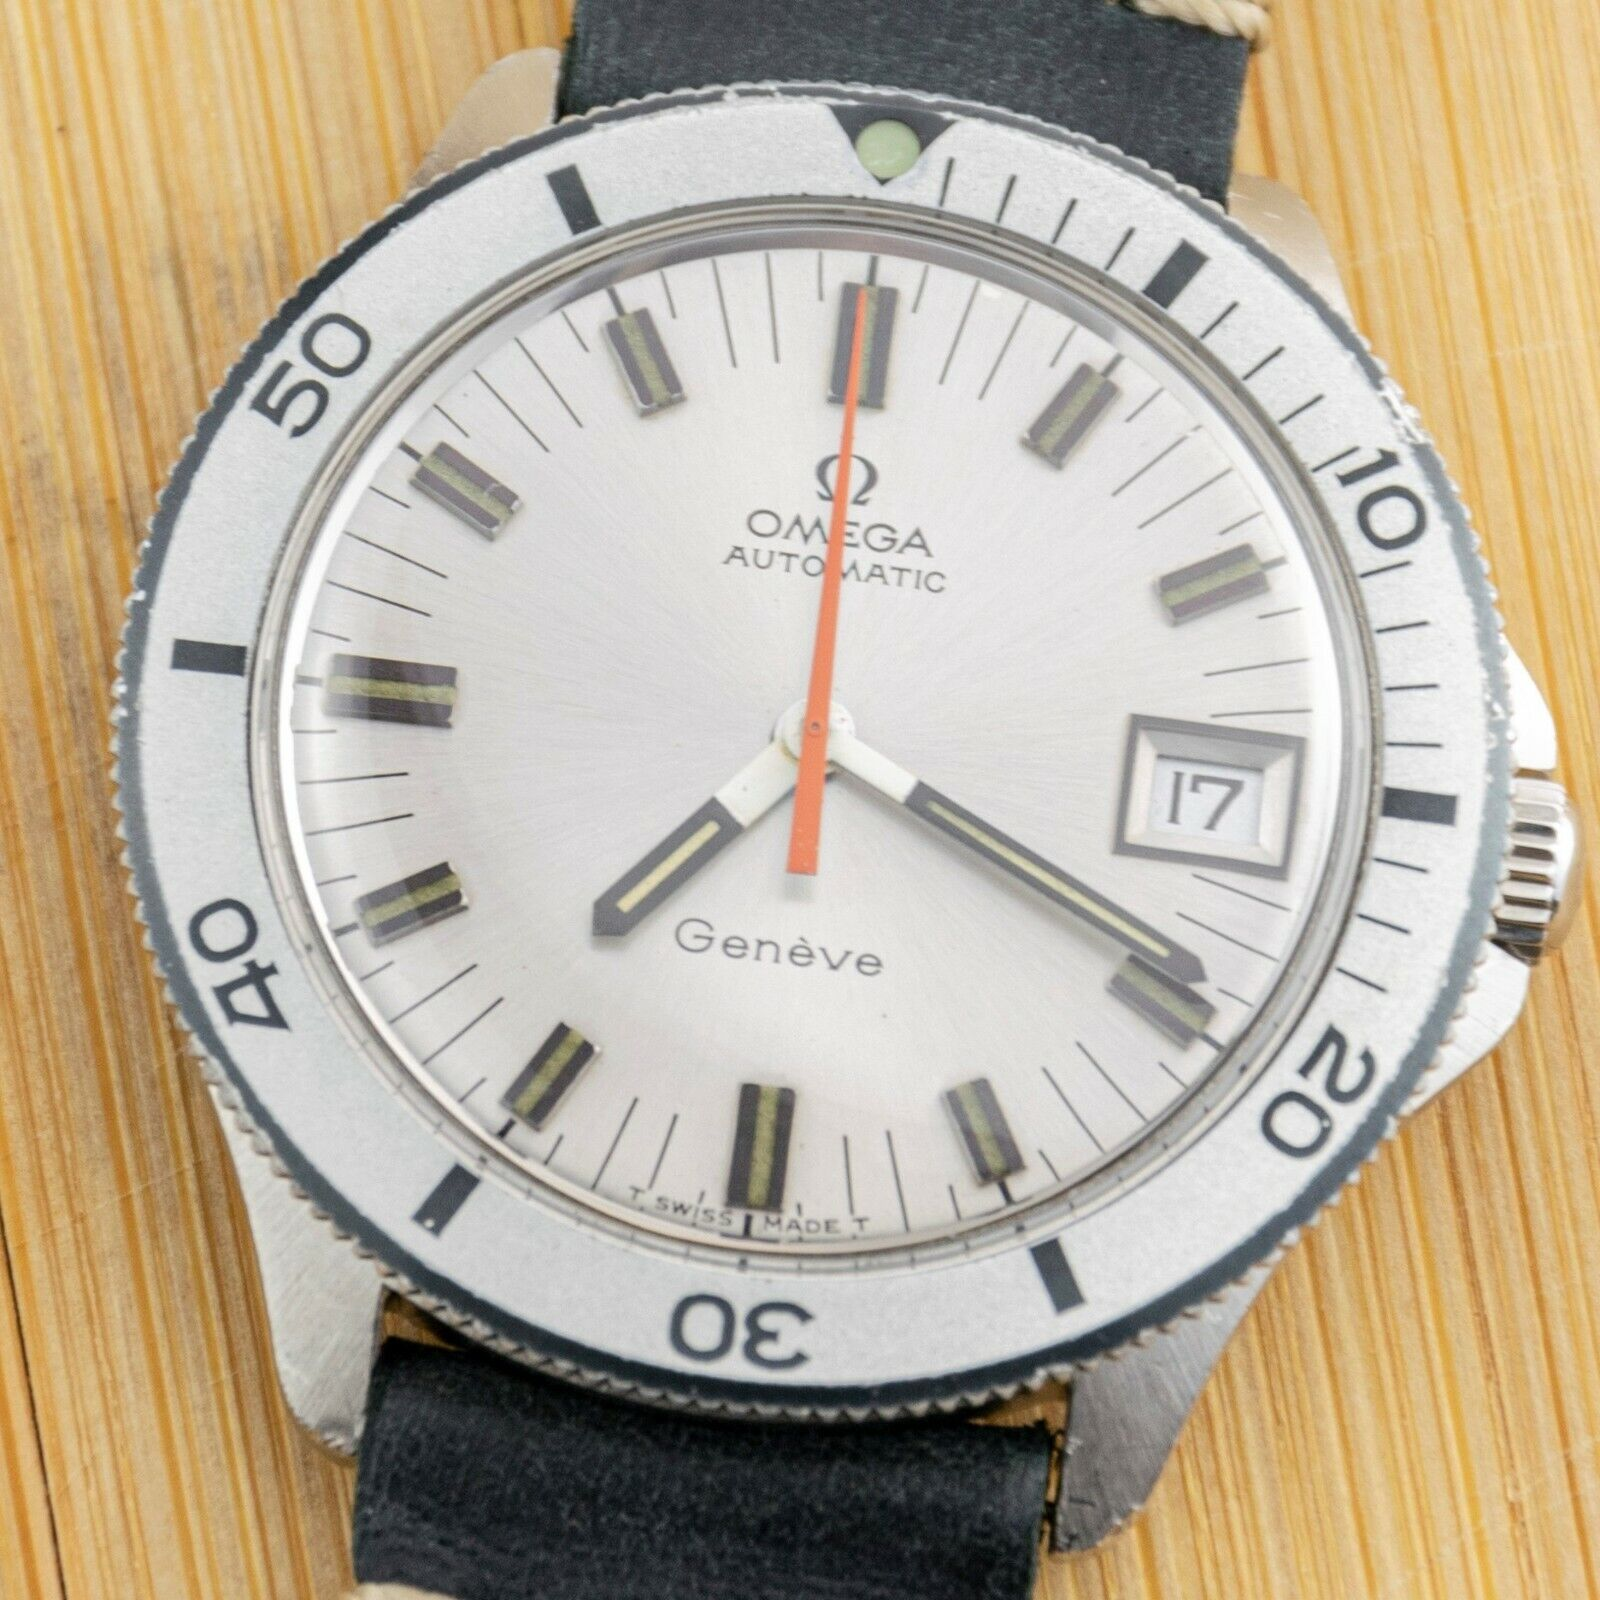 OMEGA GENEVE ADMIRALTY – VINTAGE AUTOMATIC DIVER – STEEL – MEN'S - watch picture 1